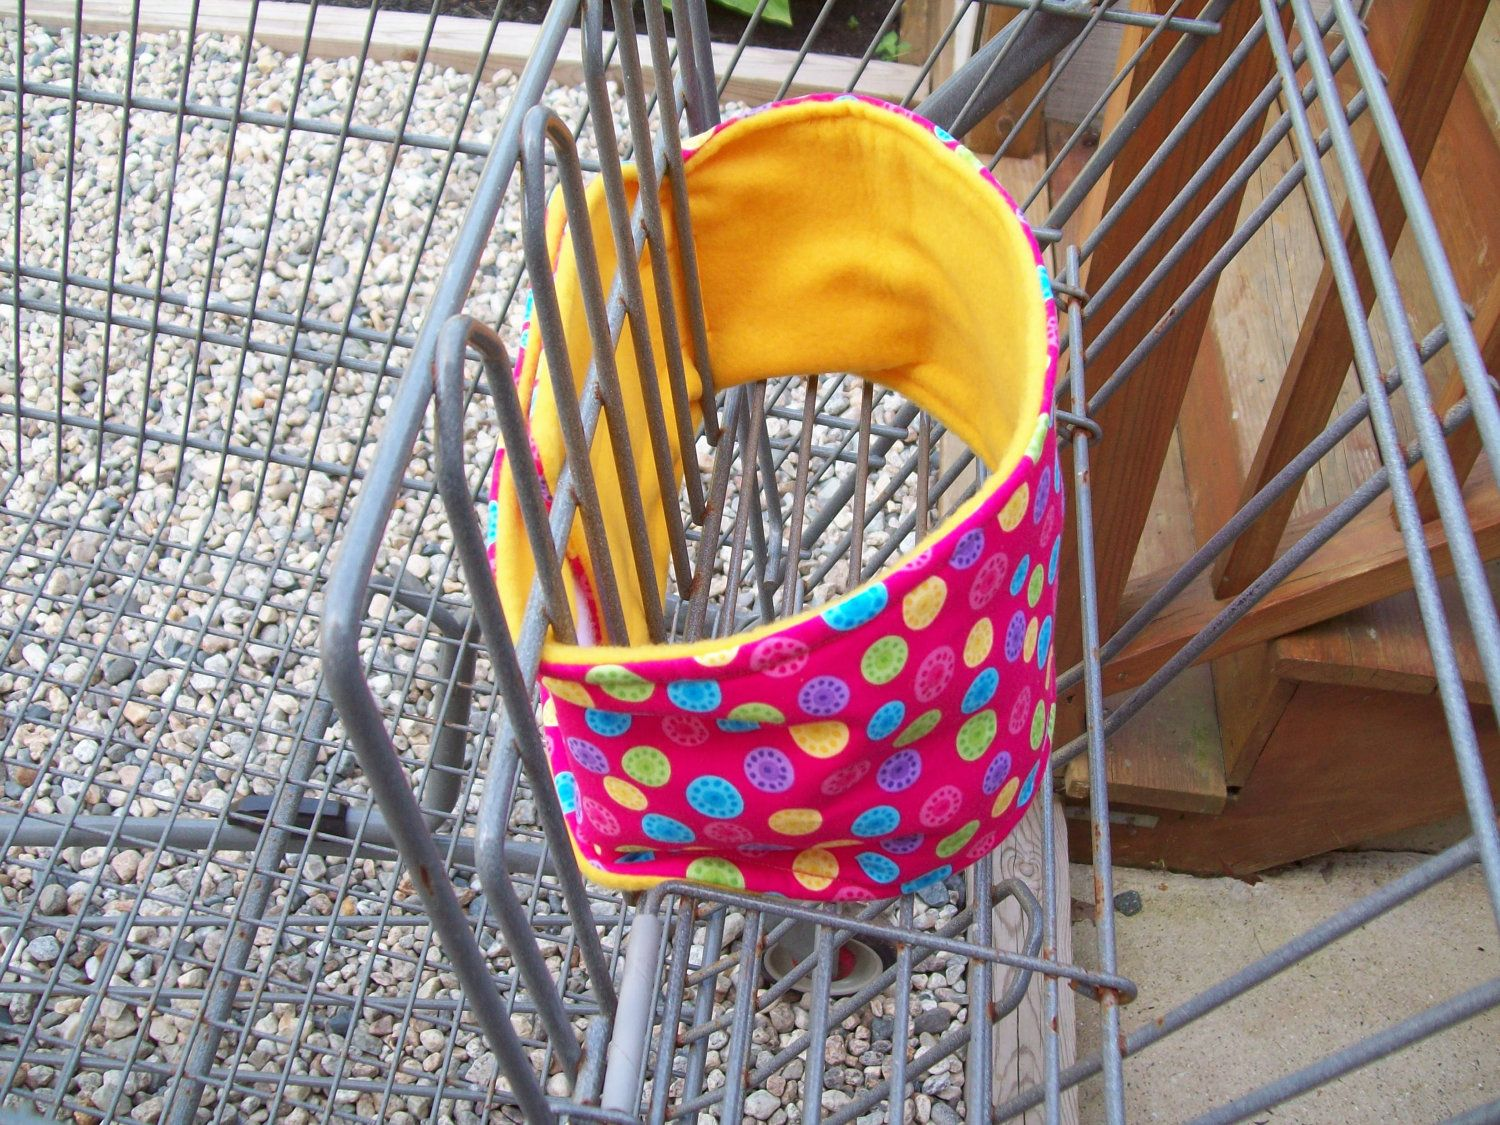 Baby Strap-Eez Shopping Cart Support Strap, Padded Shopping Cart Strap, Padded Pink Shopping Cart Cover Strap. $14.00, via Etsy.